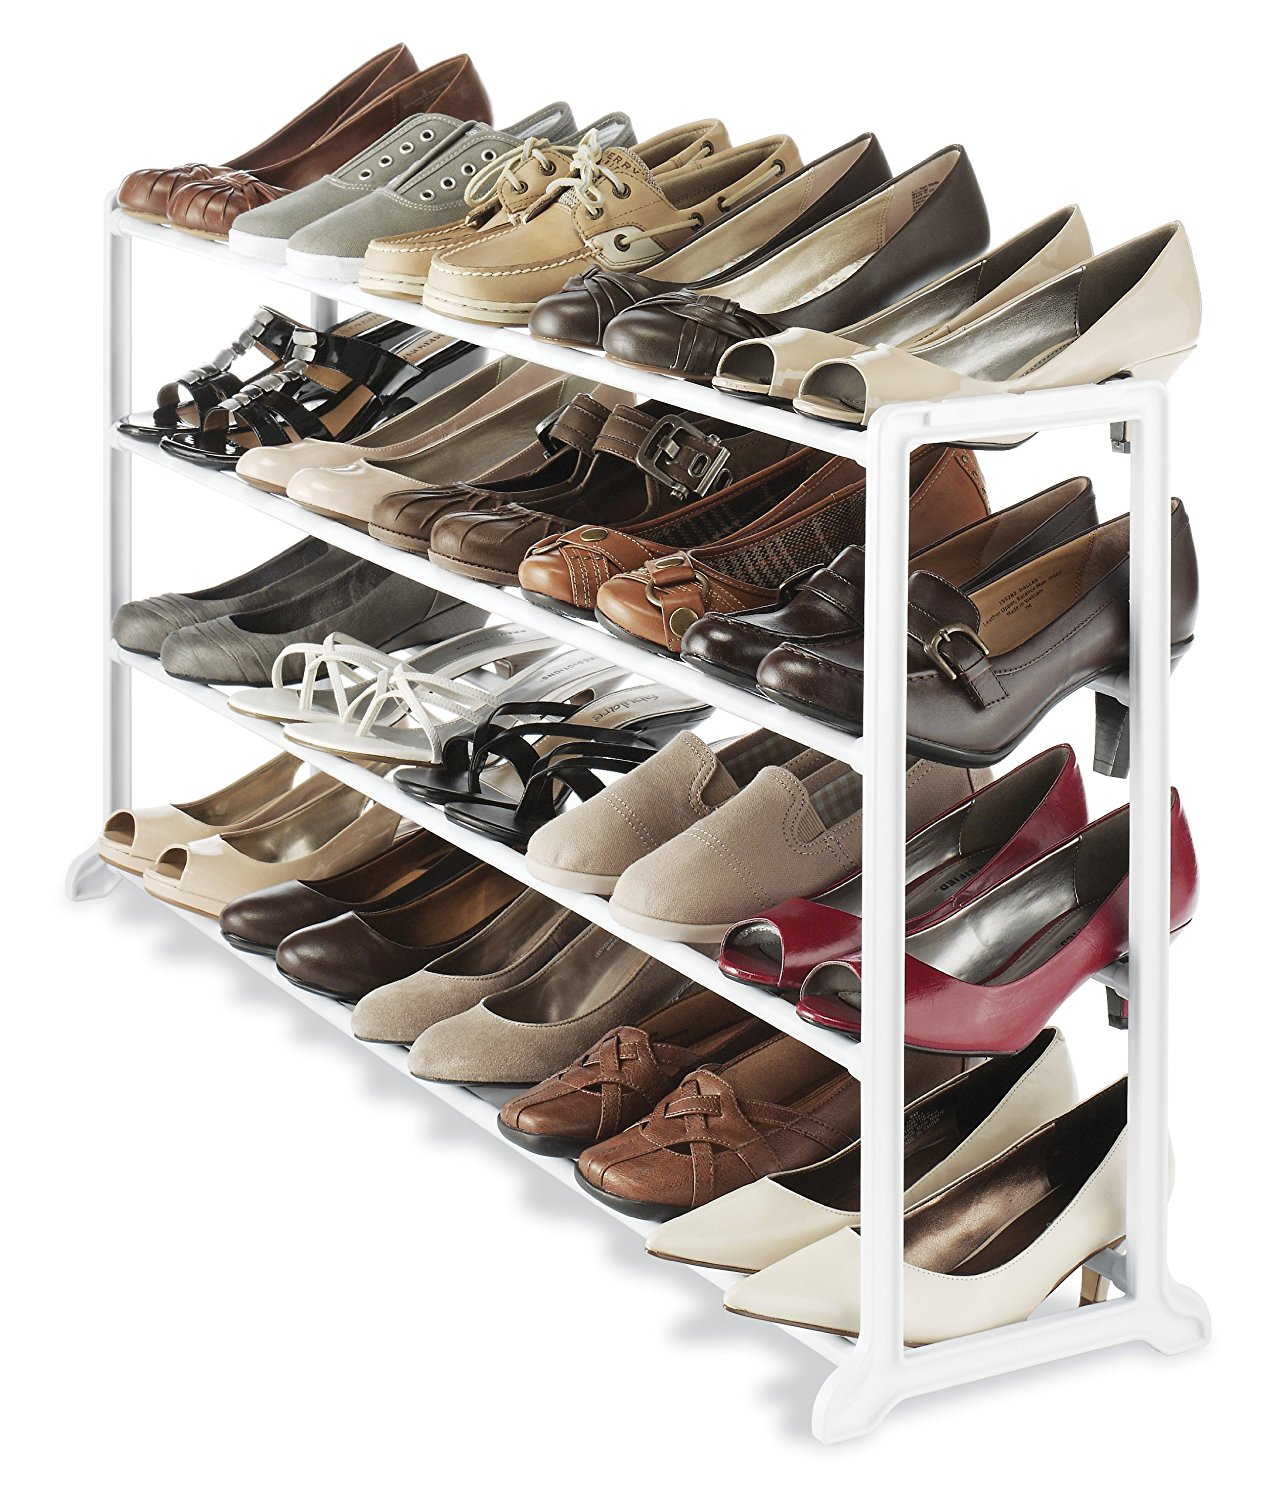 Better Homes And Gardens Fabric Shoe Rack   Walmart.com